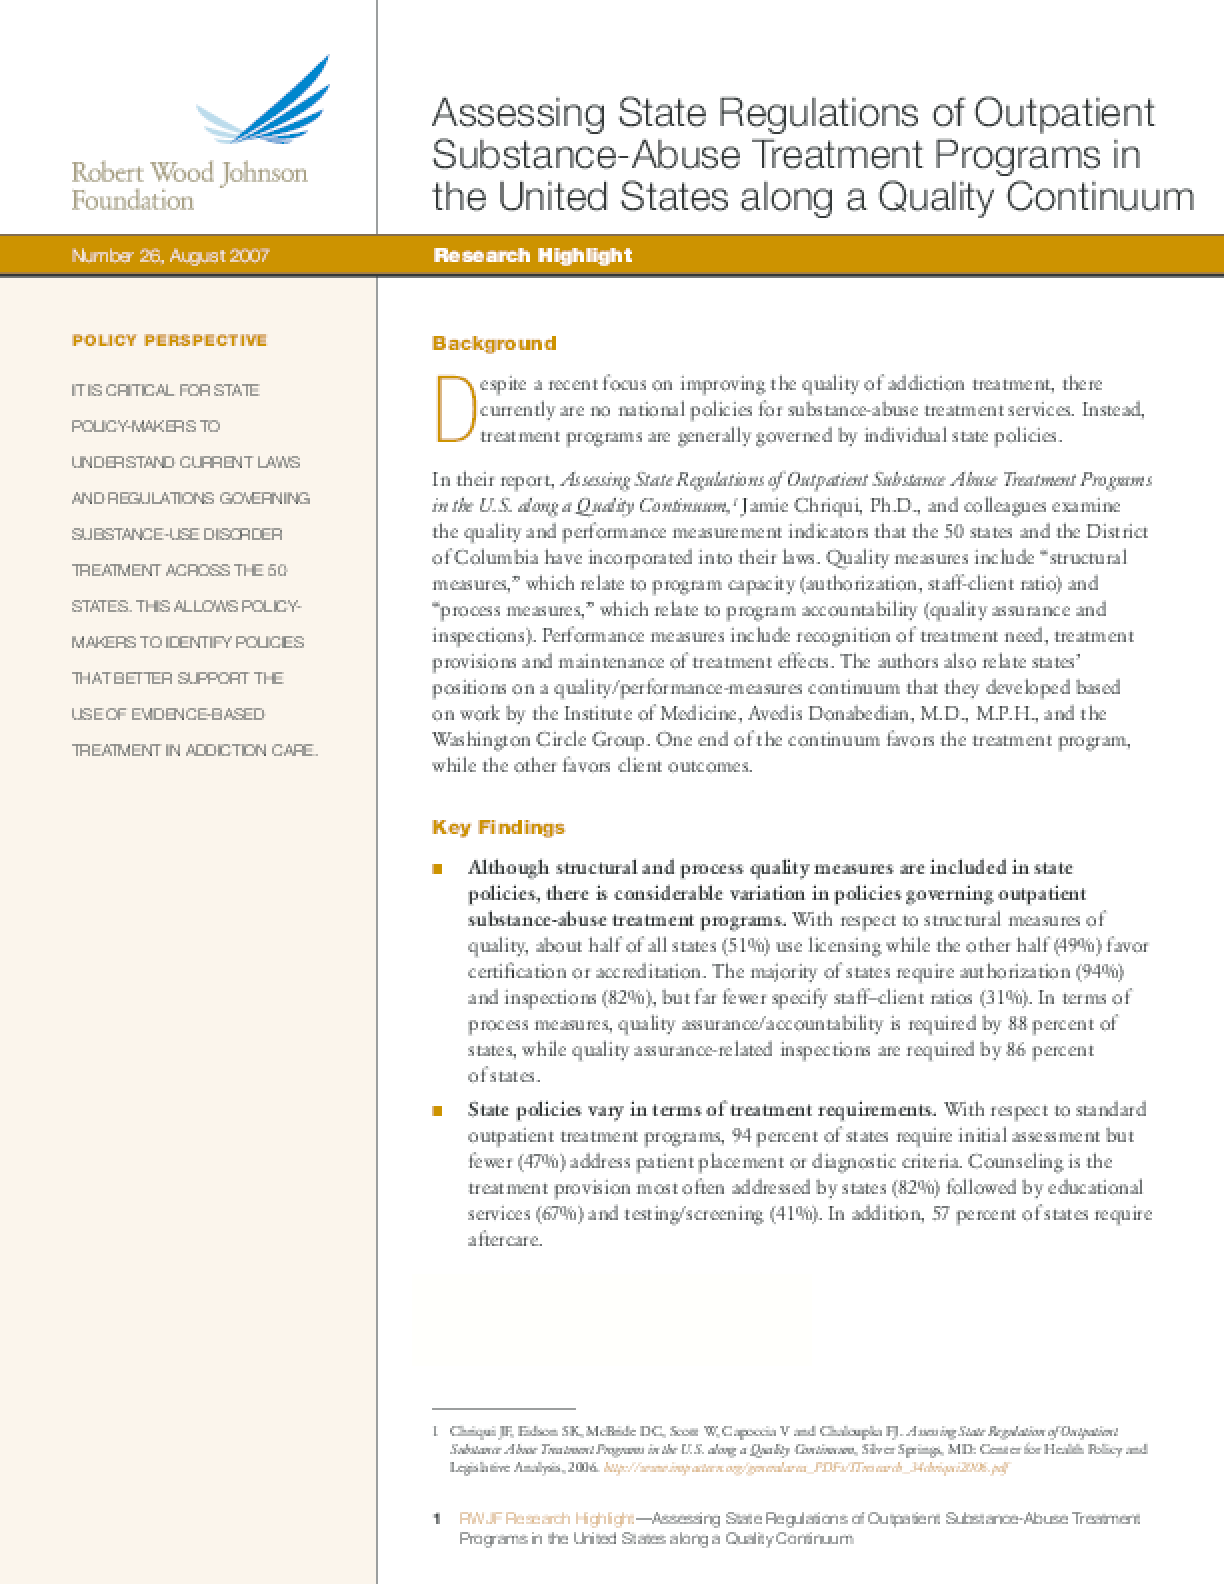 Assessing State Regulations of Outpatient Substance-Abuse Treatment Programs in the United States Along a Quality Continuum